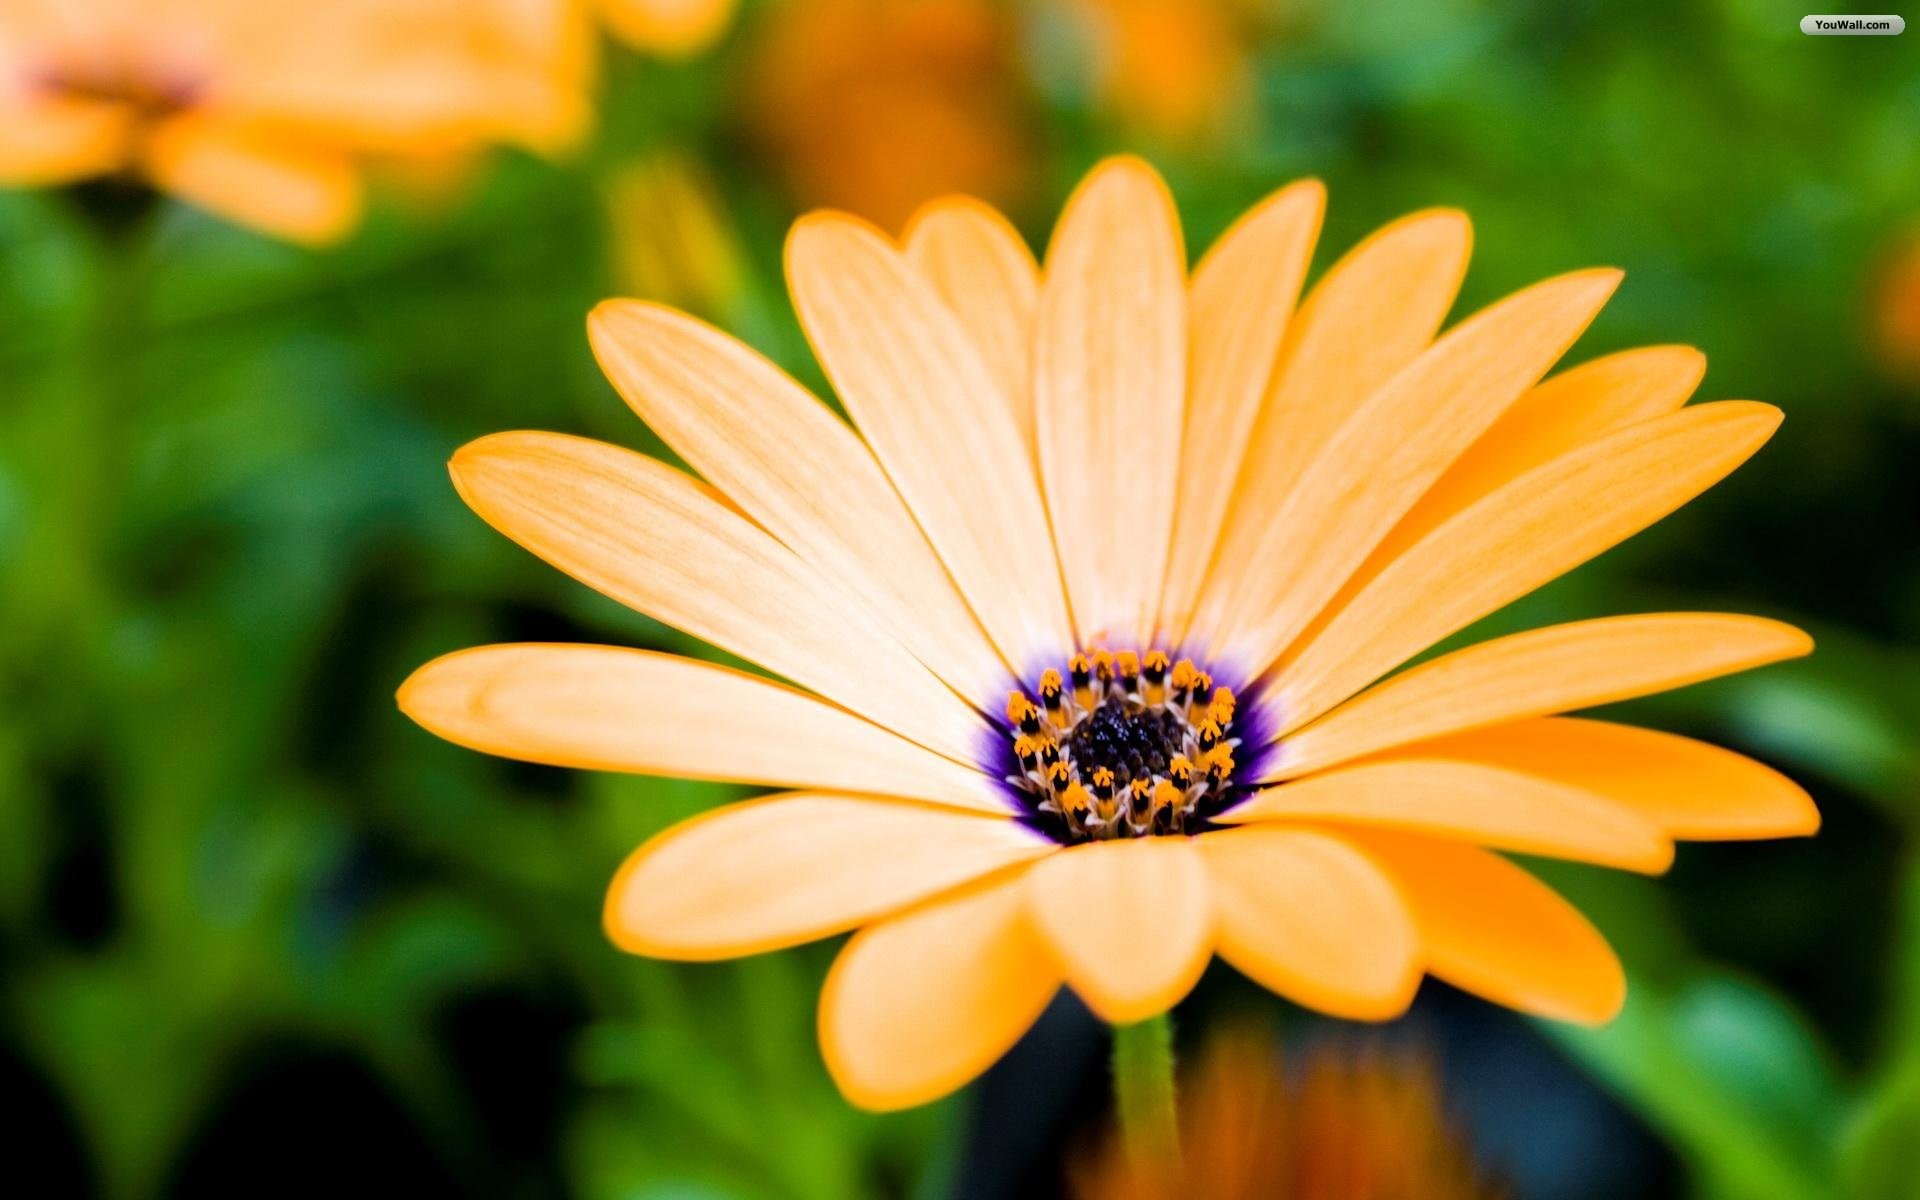 Desktop Wallpaper Images Flowers